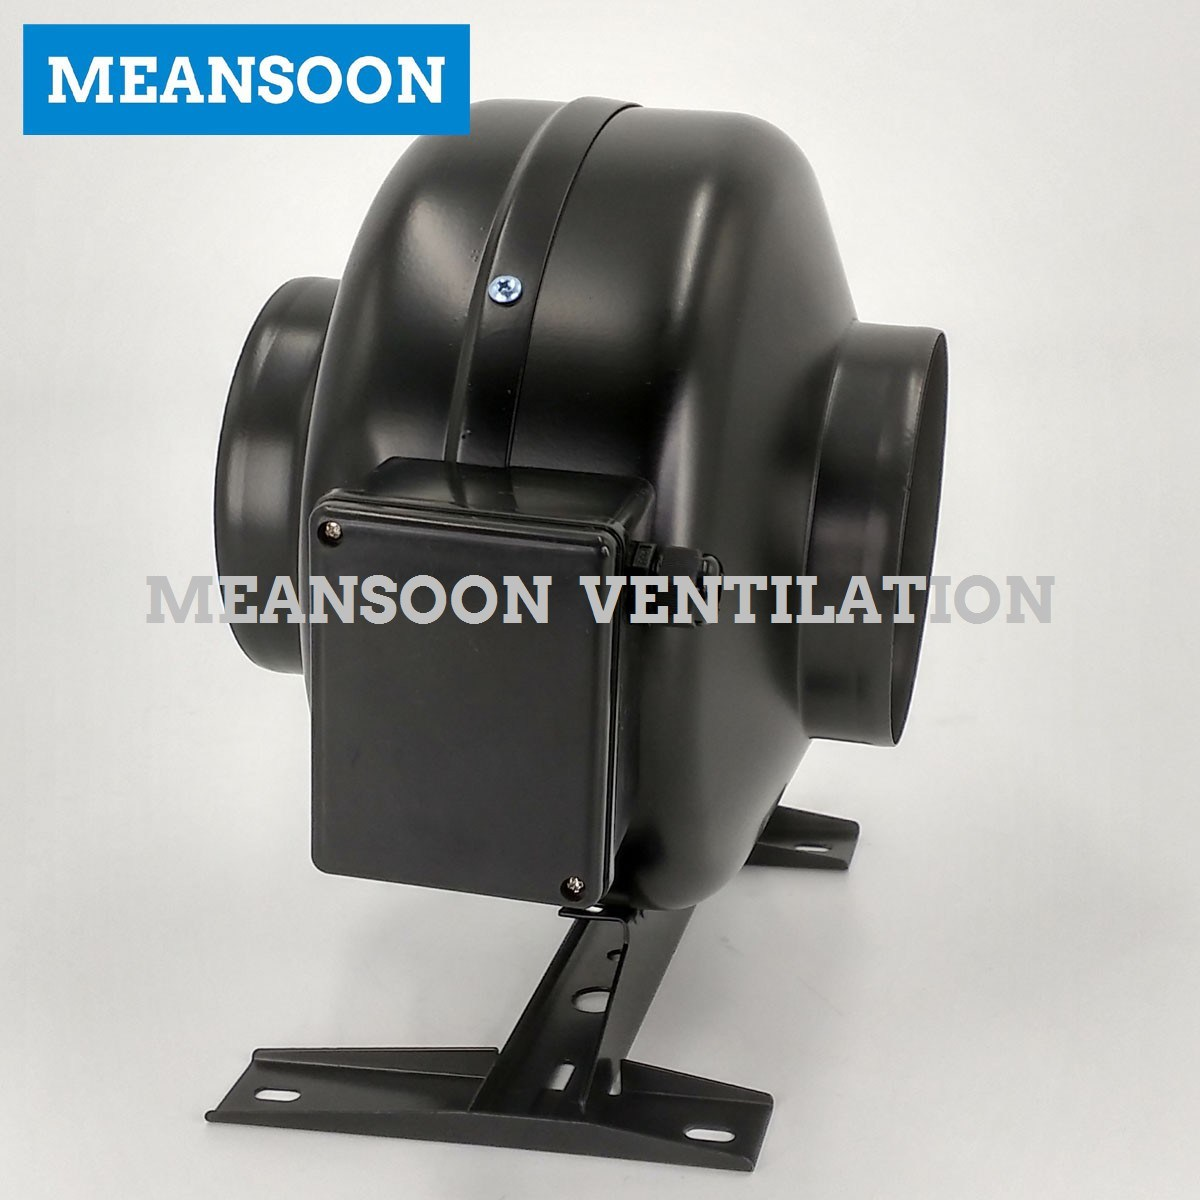 Circular Inline Duct Fan 125 for Exhaust Cooling Ventilating